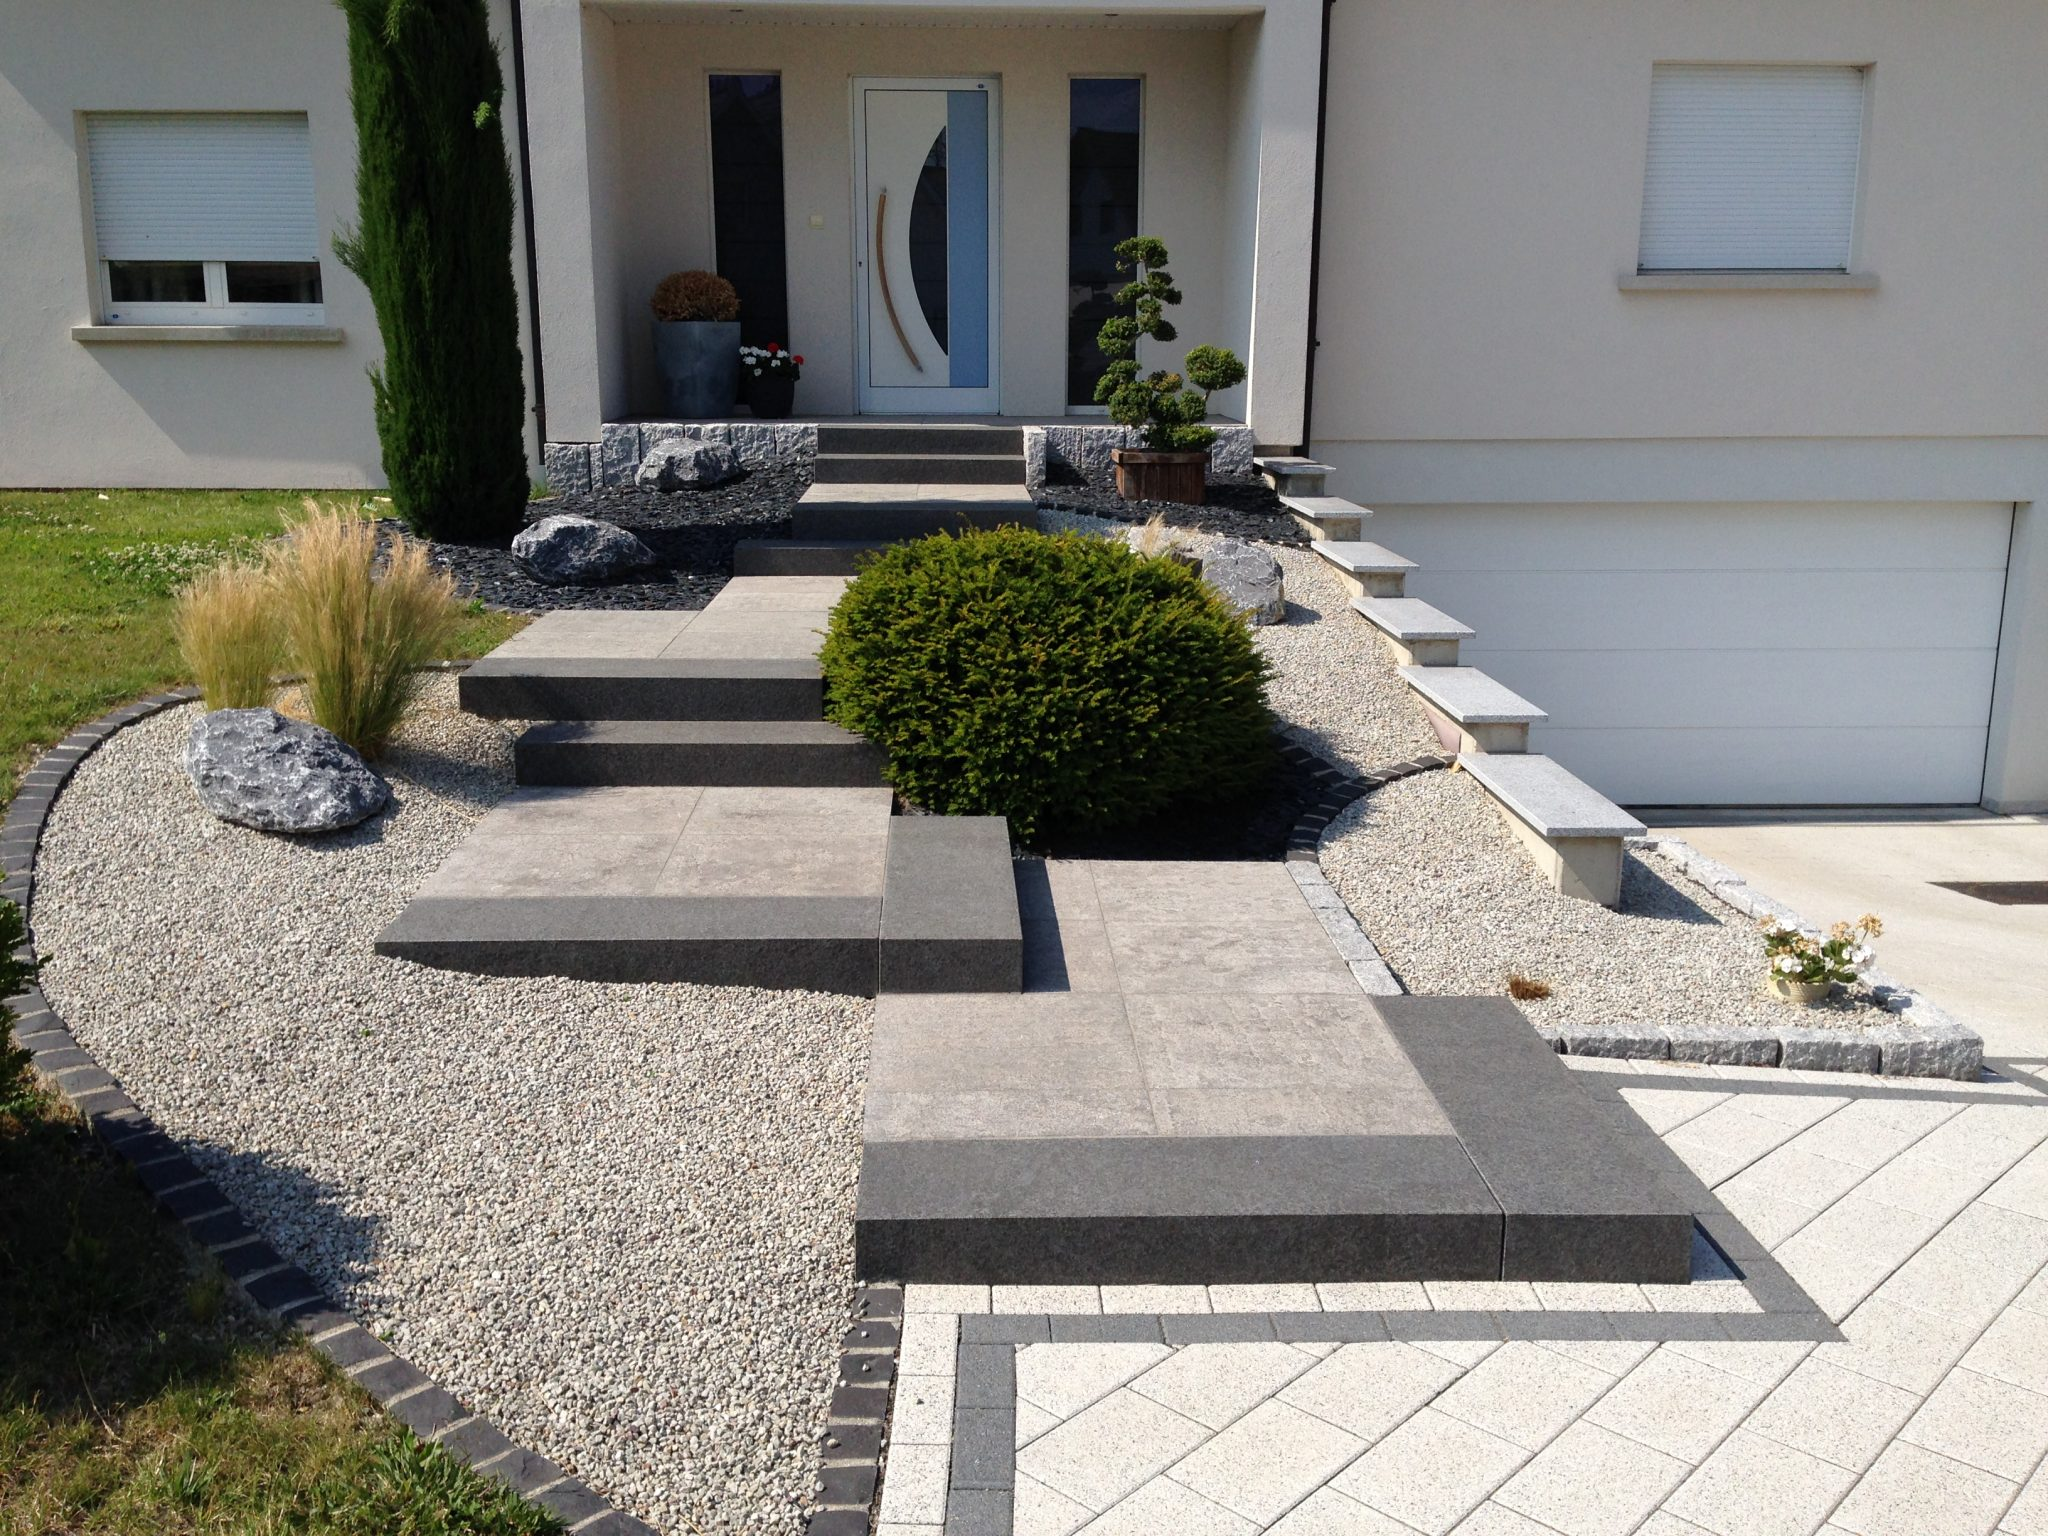 Amenagement exterieur mc immo - Amenagement jardin exterieur design ...